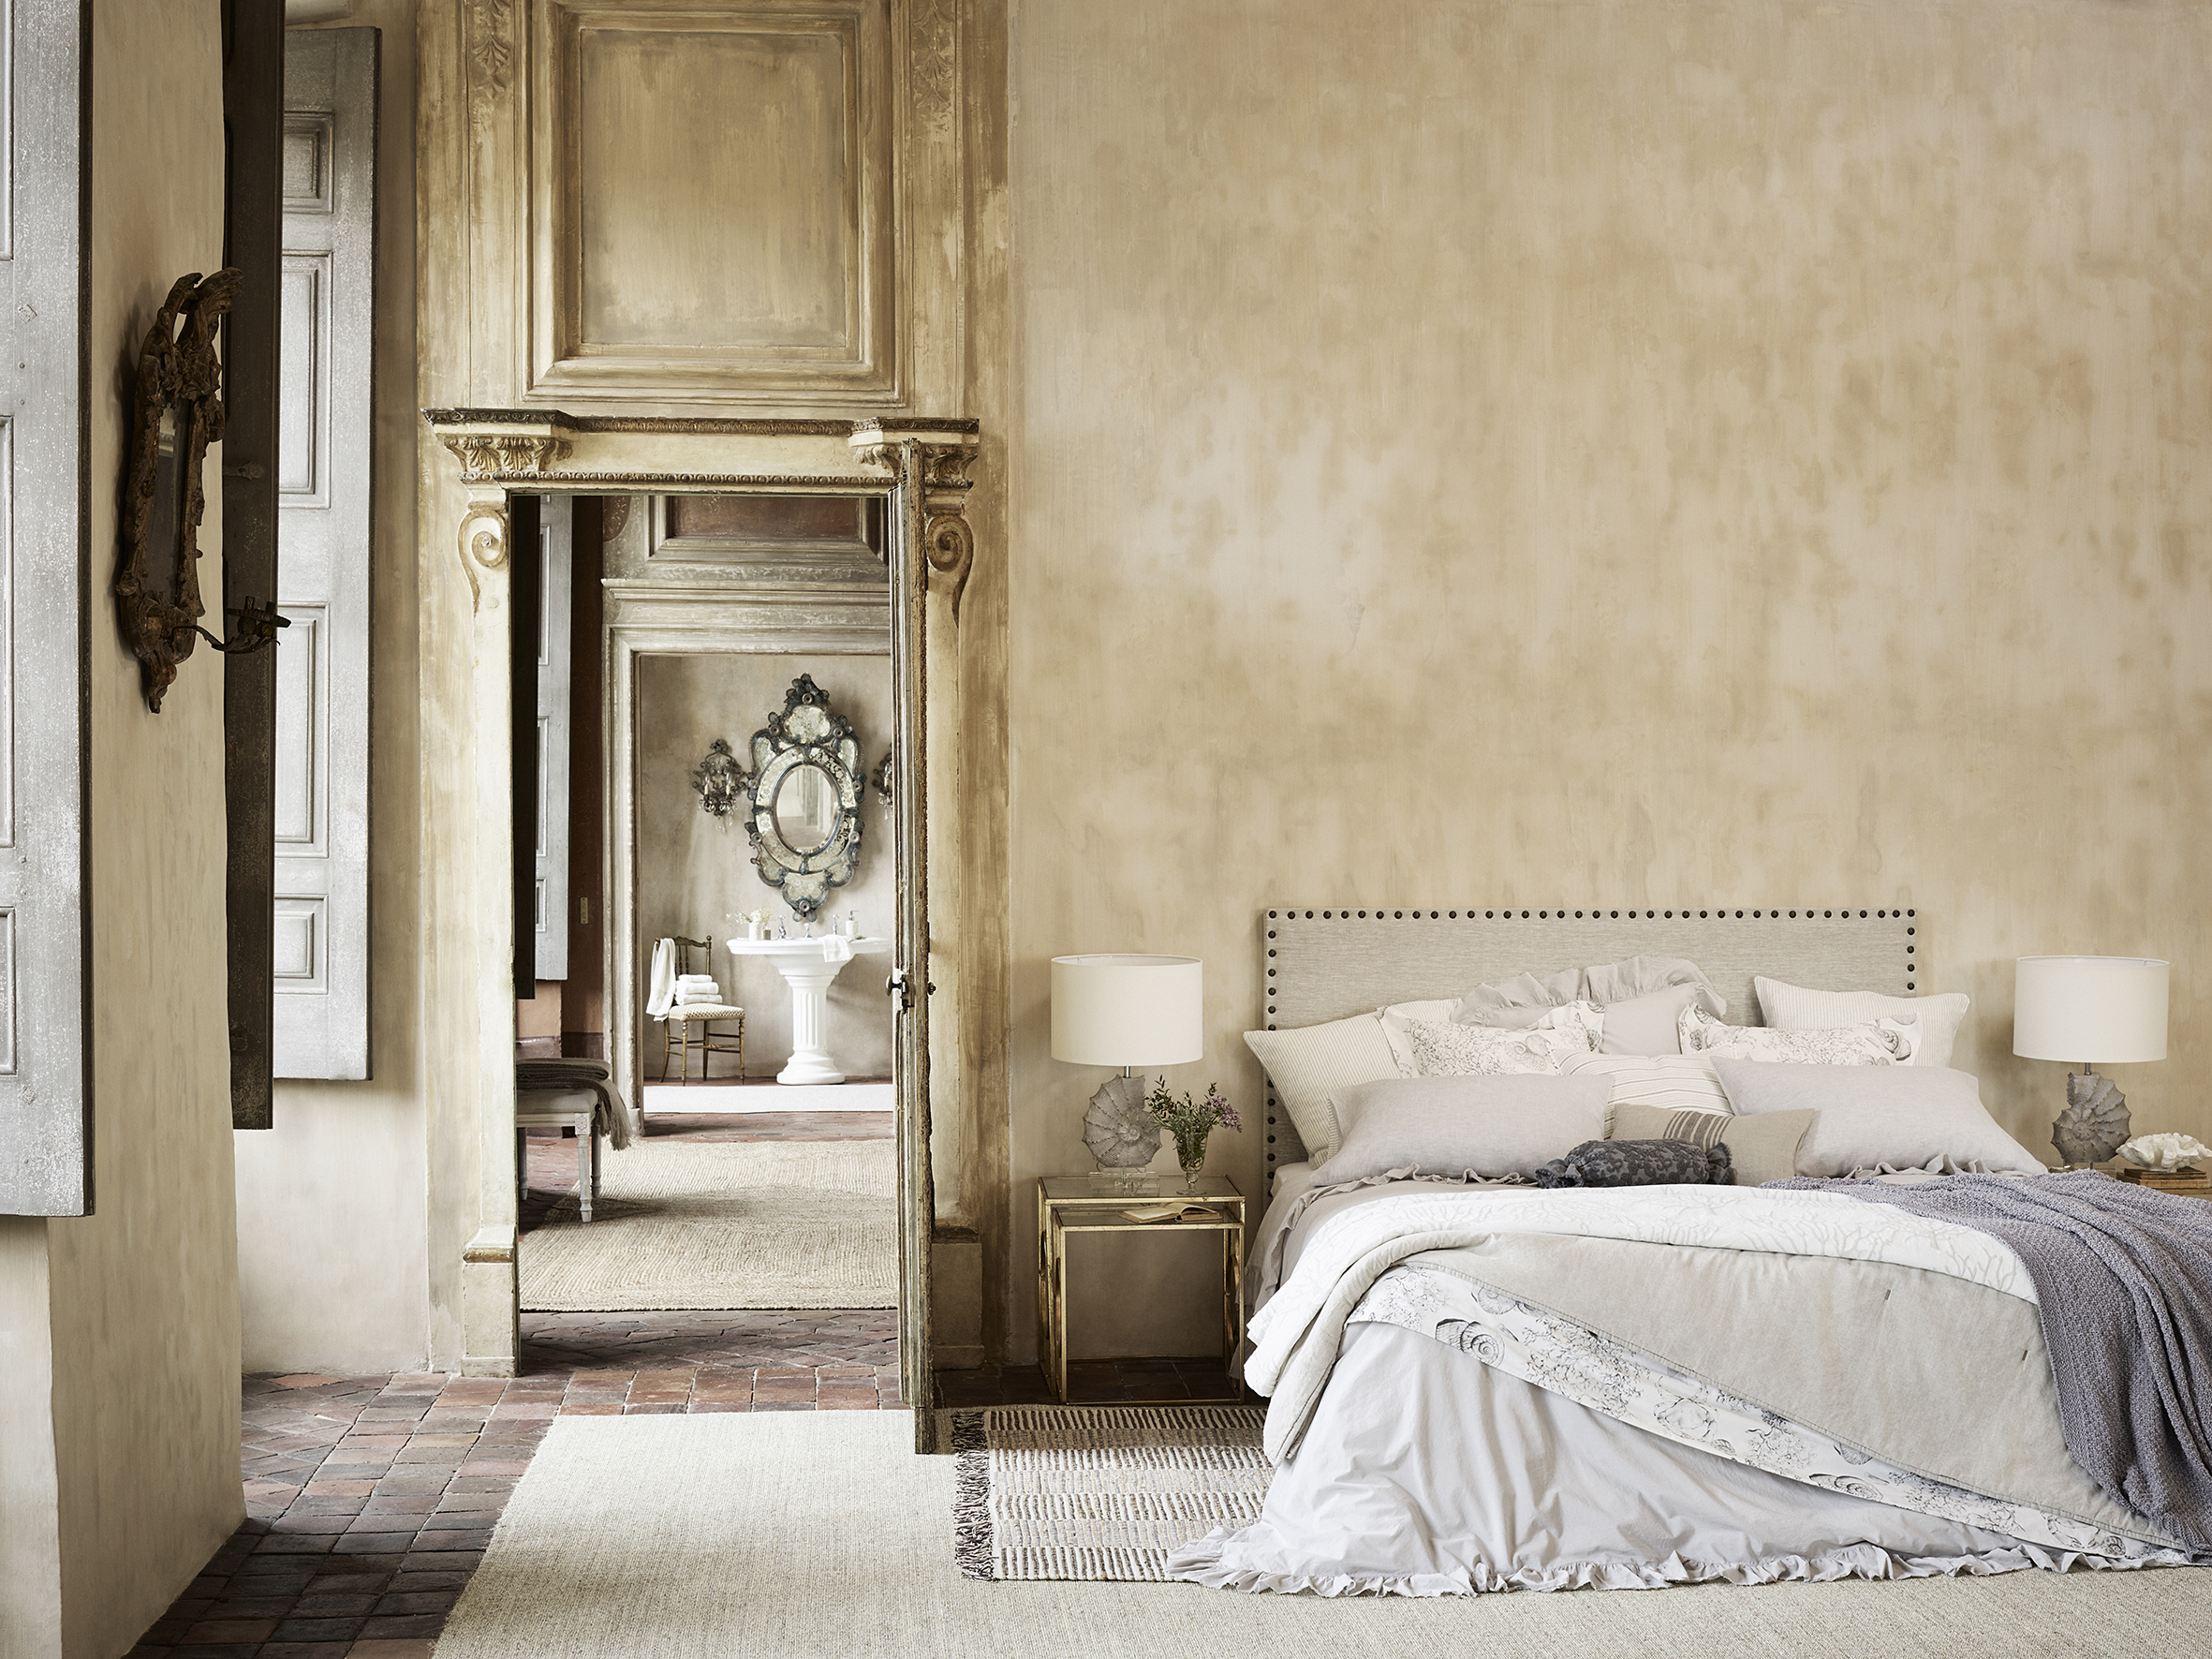 zara home ss 2016 versailles e cabinet de curiosit s shabby chic mania by grazia maiolino. Black Bedroom Furniture Sets. Home Design Ideas